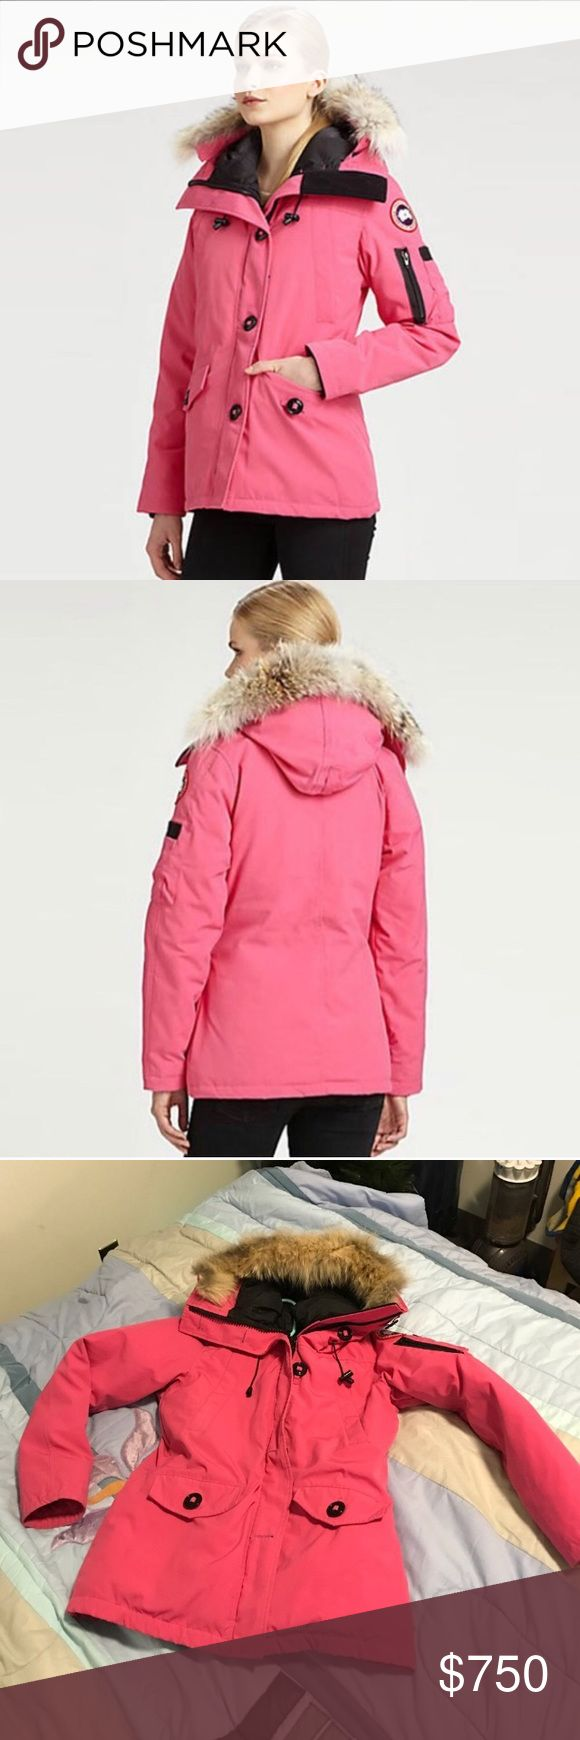 CANADA GOOSE RESERVED FOR TRADE ❤️ 100% AUTHENTIC $1000.00 PLUS TAX RETAIL CANADA GOOSE FEMME WOMENS PARKA COAT SIZE MEDIUM, FITS A SMALL EASILY AS WELL. GUARANTEED AUTHENTIC FROM BLOOMINGDALES IN NEW YORK WITH HOLOGRAM TO PROVE AUTHENTICITY. SUPER WARM AND INSULATED WILL KEEP YOU WARM IN EVEN THE COLDEST WEATHER. WORN 1 SEASON GREAT GENTLY USED CONDITION, A LITTKE FADING. •••PRICED TO SELL SAME DAY, OFFERS WELCOME THROUGH THE OFFER OPTION, NO TRADES OR HOLDS••• Canada Goose Jackets & Coats…